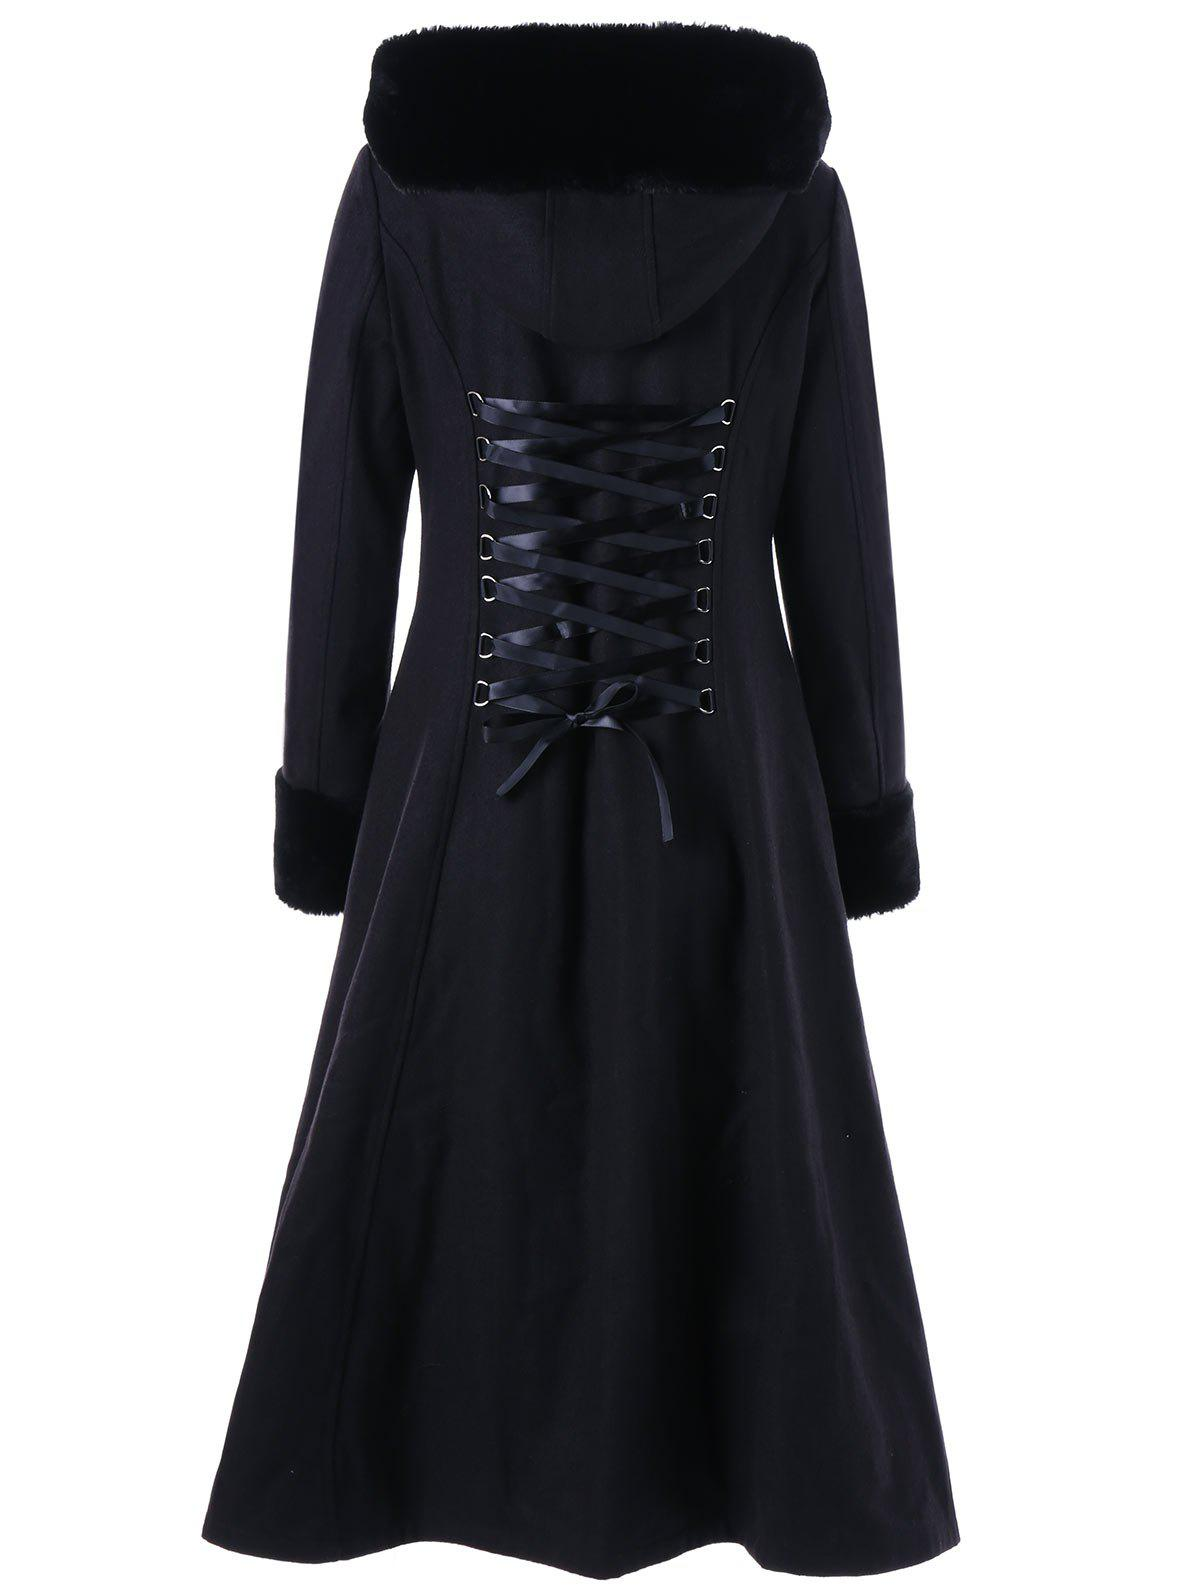 Lace Up Longline Hooded Coat - BLACK XL